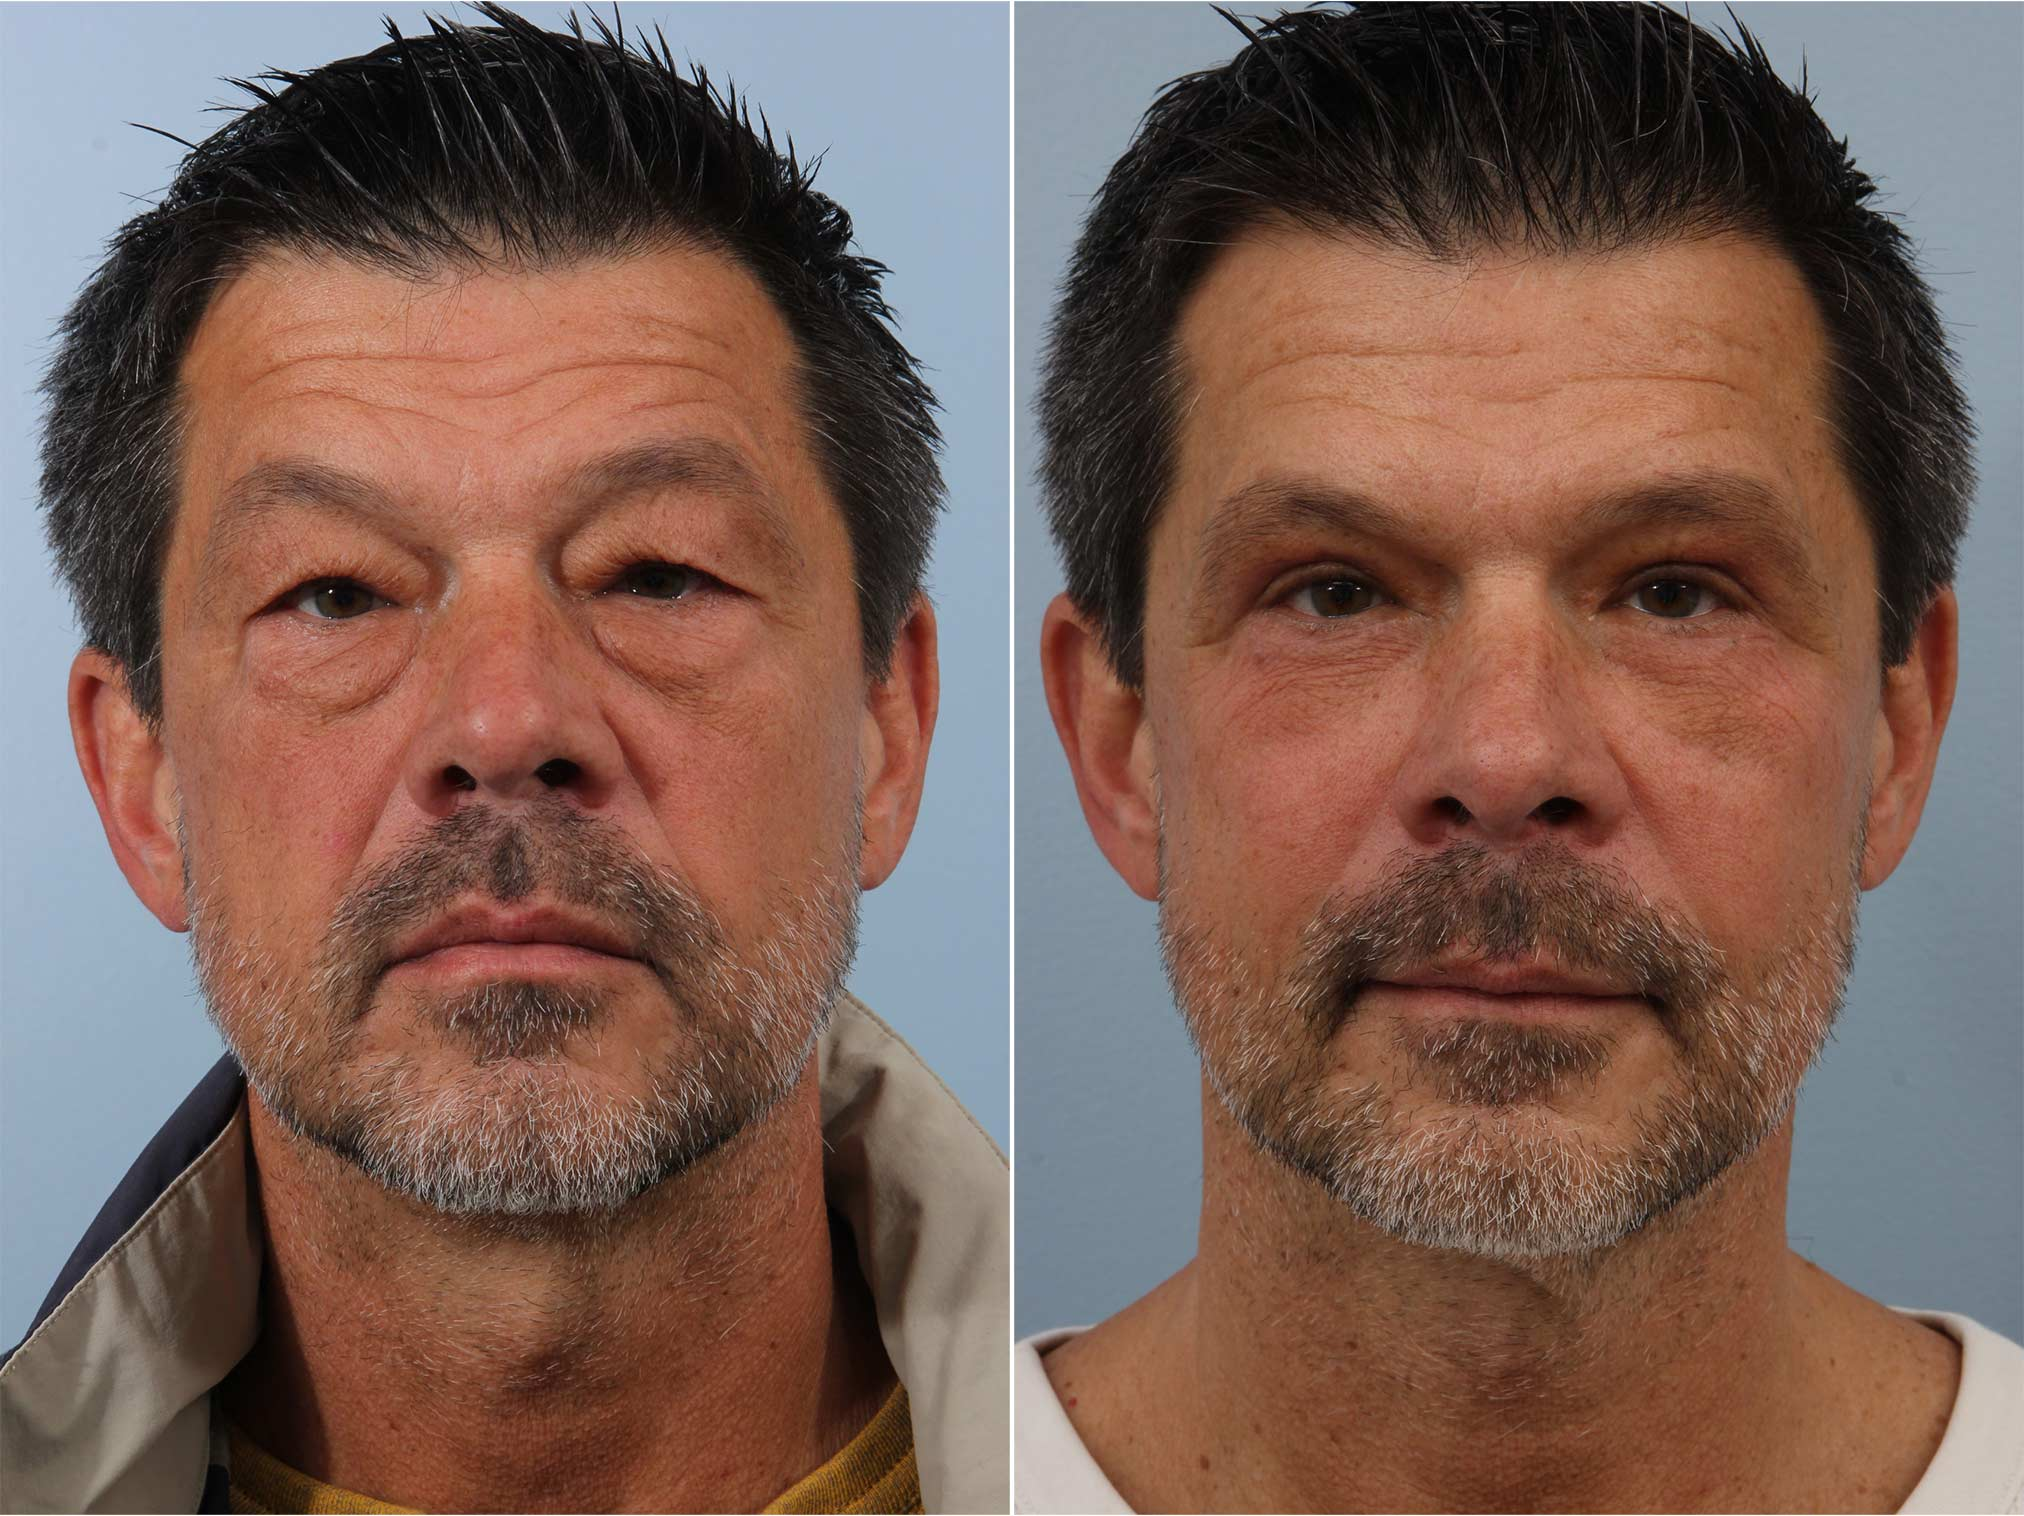 Closeup of a male patient before and after blepharoplasty surgery, which removed undereye bags and puffiness